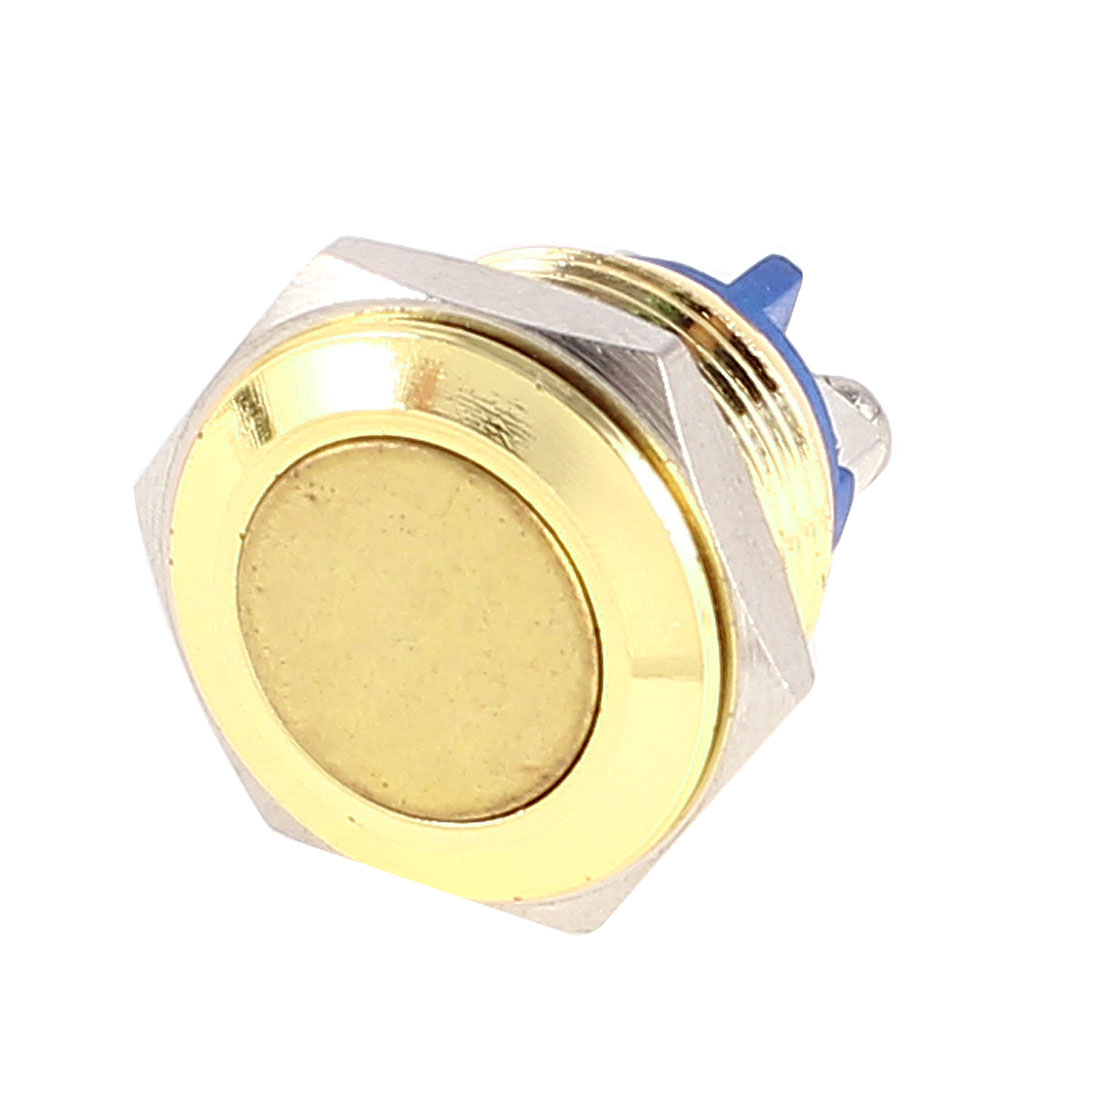 Momentary SPST 16mm Panel Cutout 2 Screw Terminals Golden Plated Metal Flat Head Push Button Switch